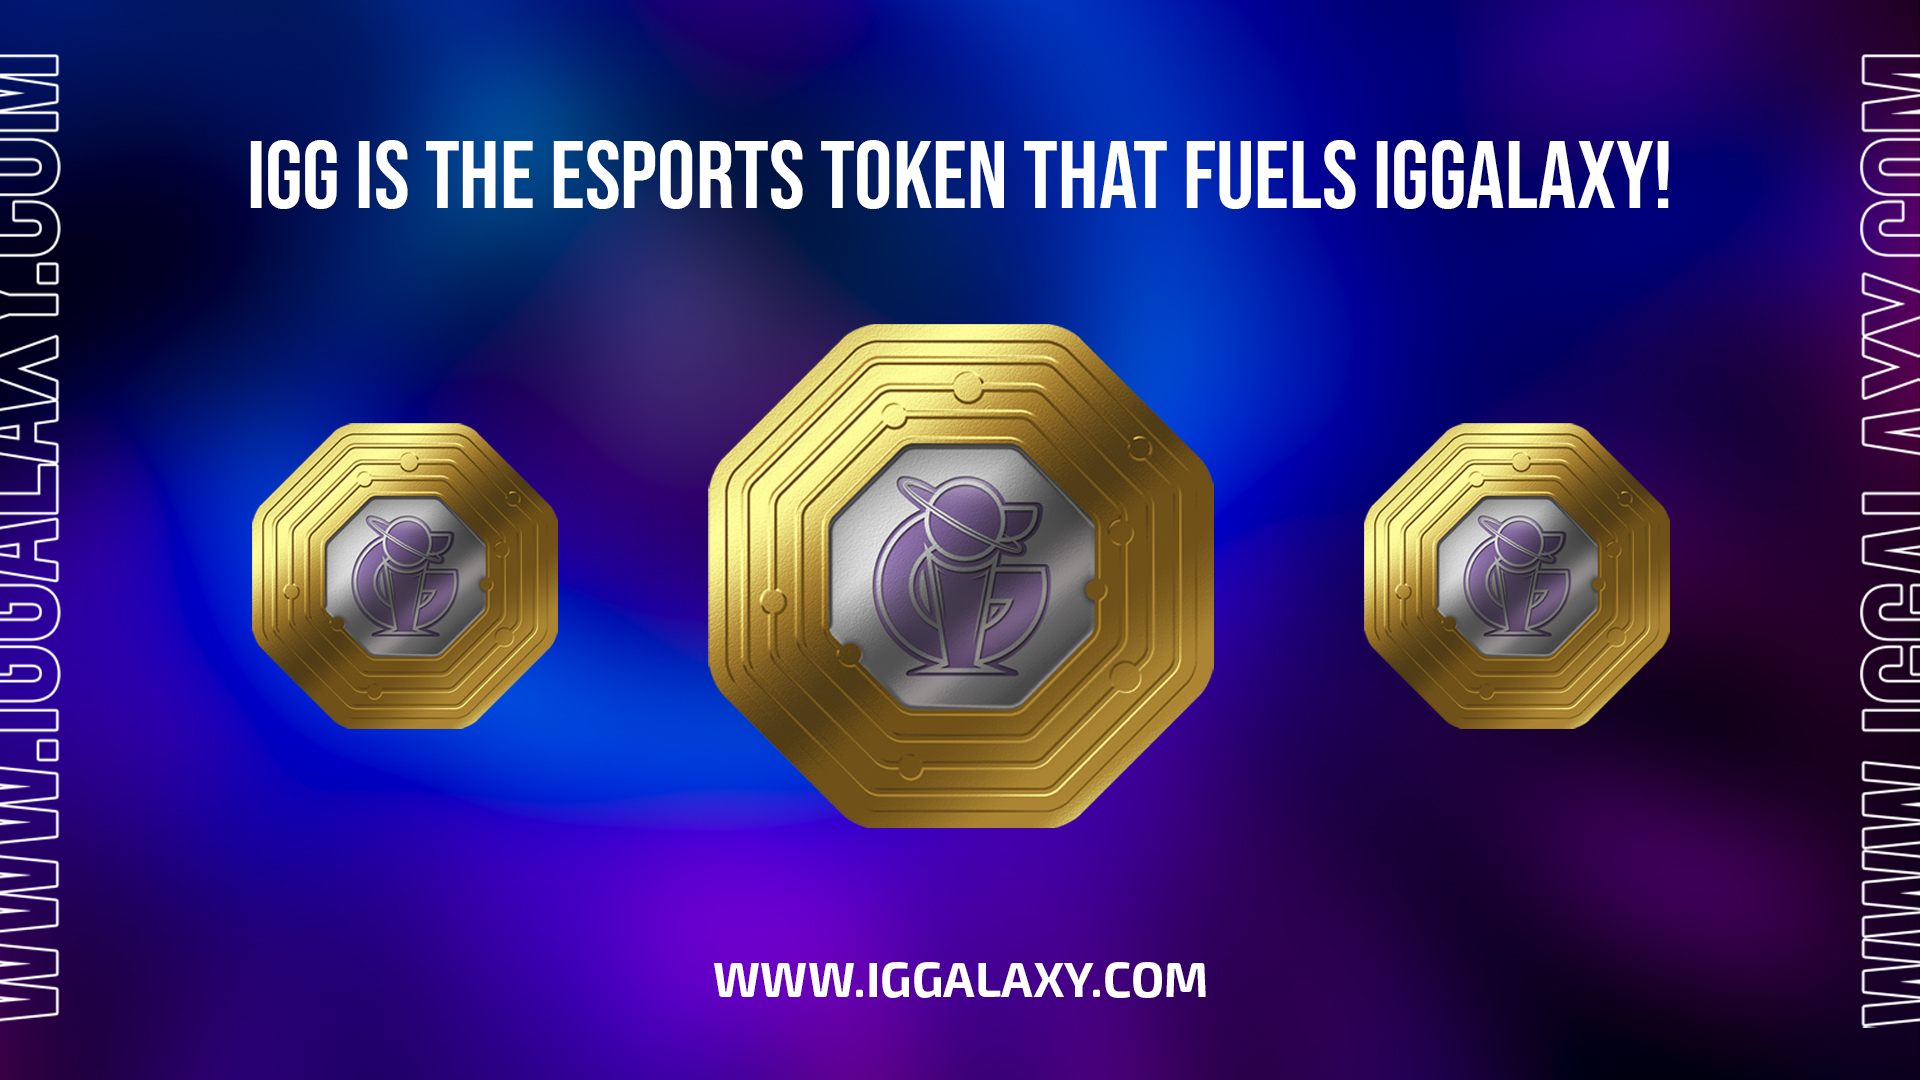 IGG: The competitive gaming and esports token!